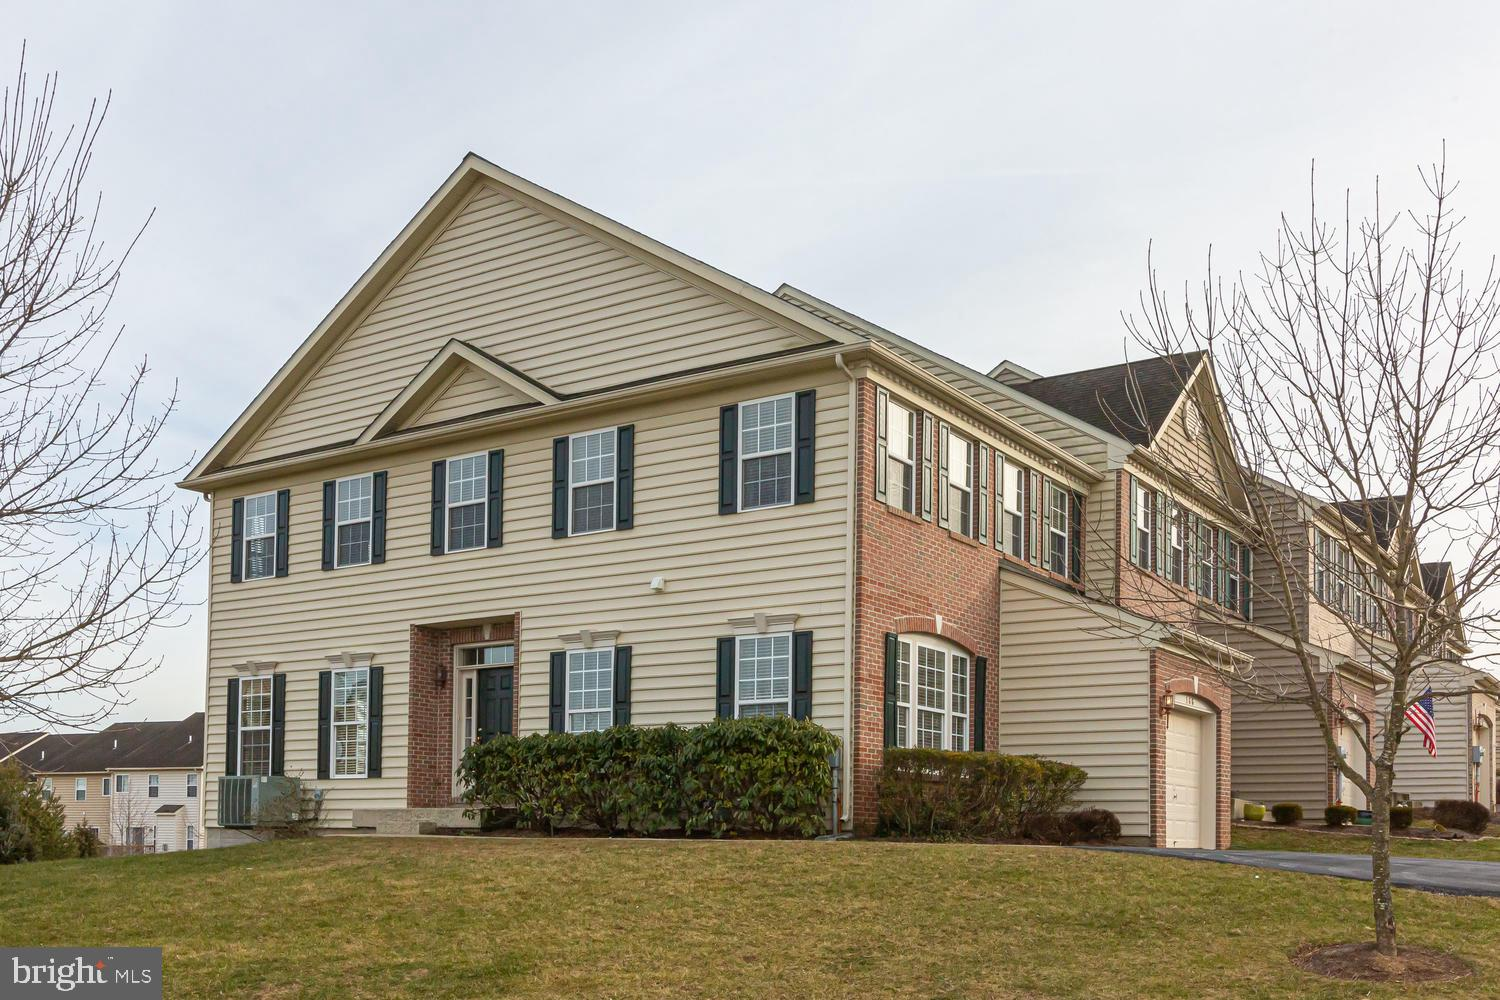 166 PENNS MANOR Dr, Kennett Square, PA, 19348